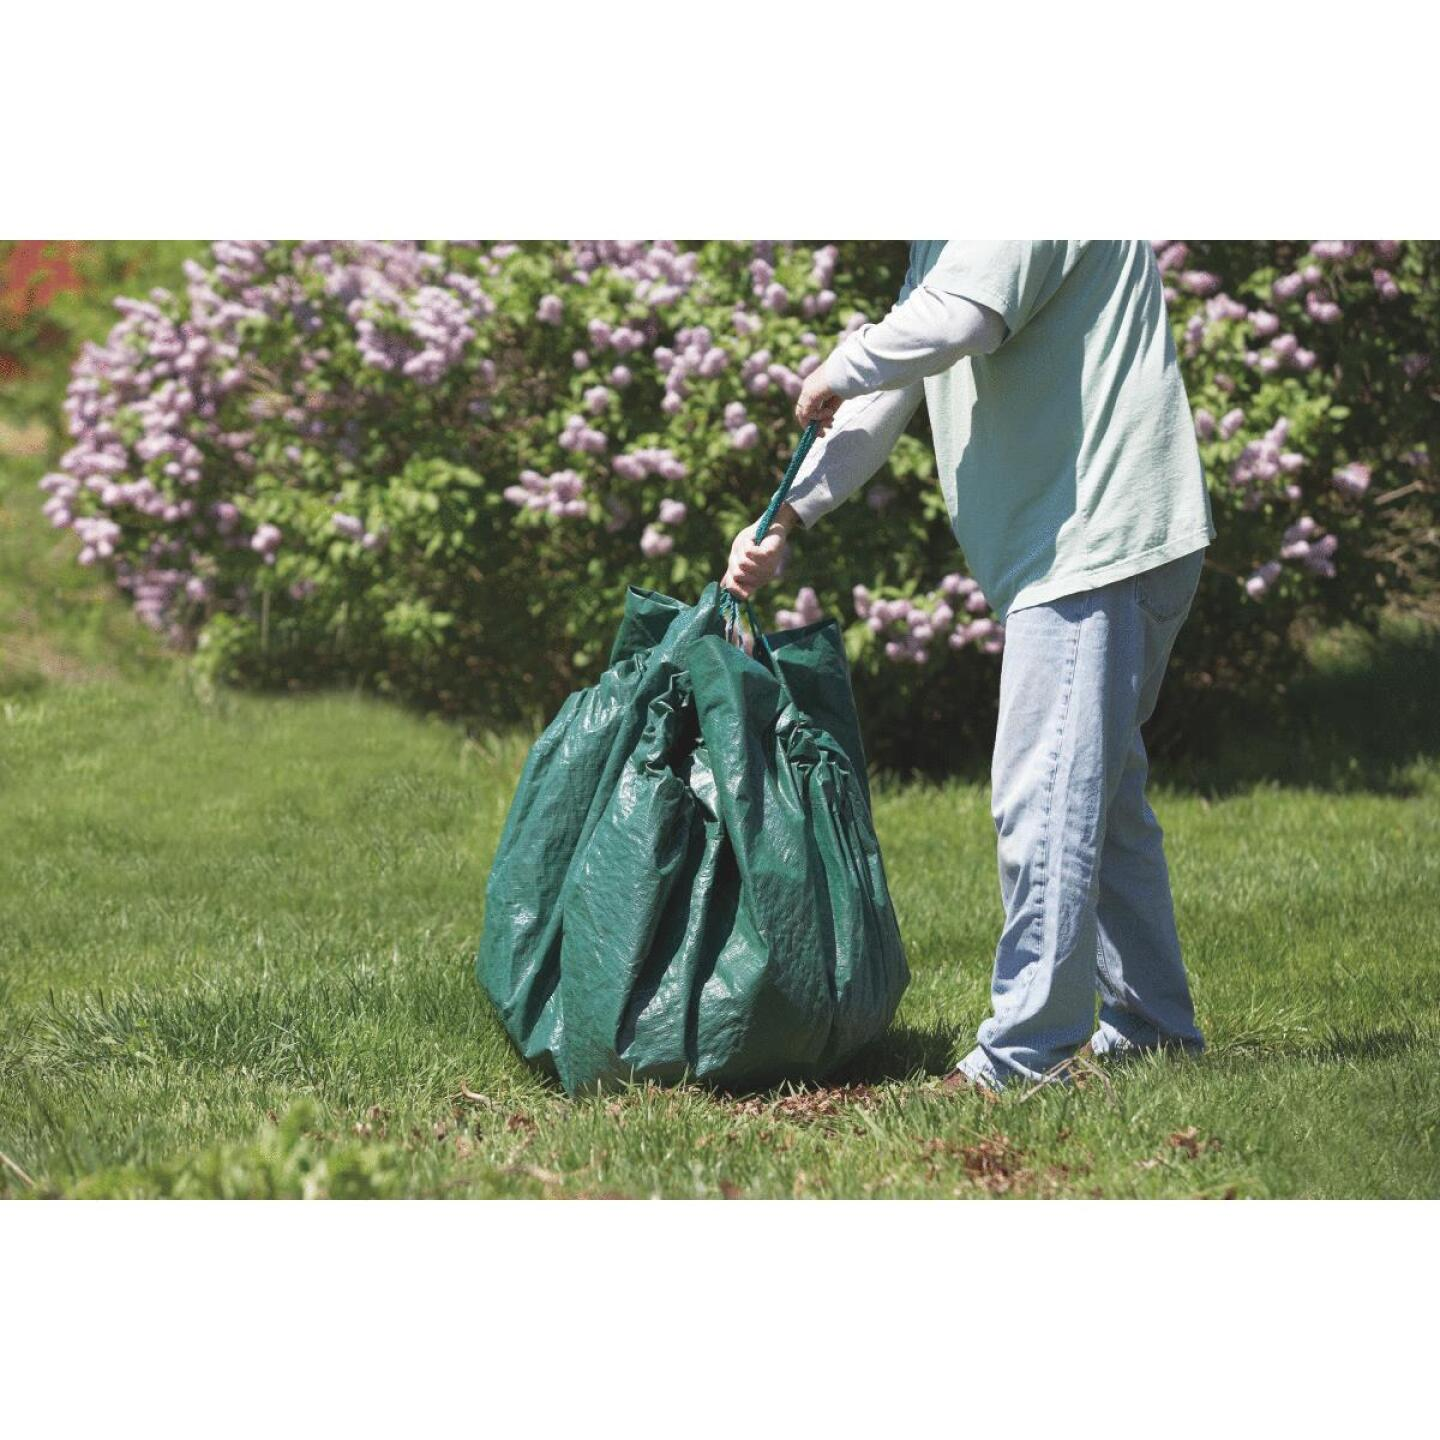 Do it 6 Ft. x 6 Ft. Poly Fabric Green Lawn Cleanup Tarp Image 2